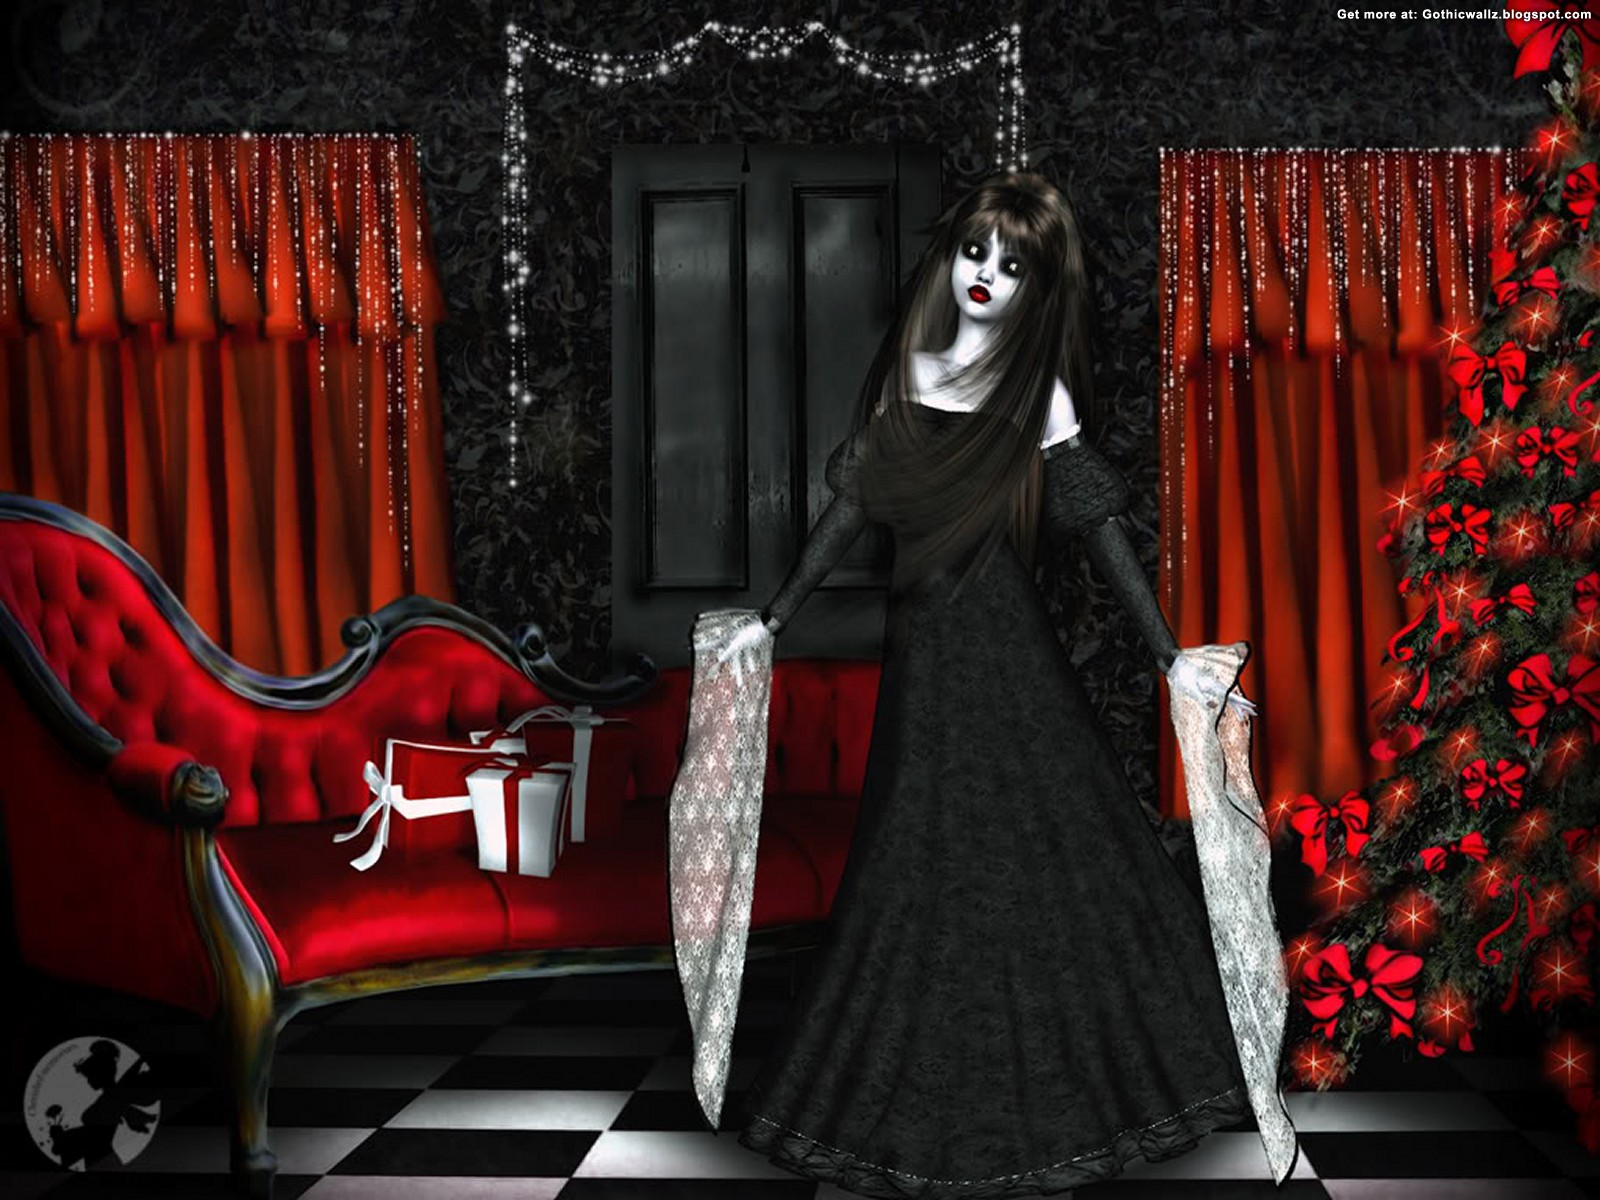 Gothic Christmas 1 | Gothic Wallpaper Download